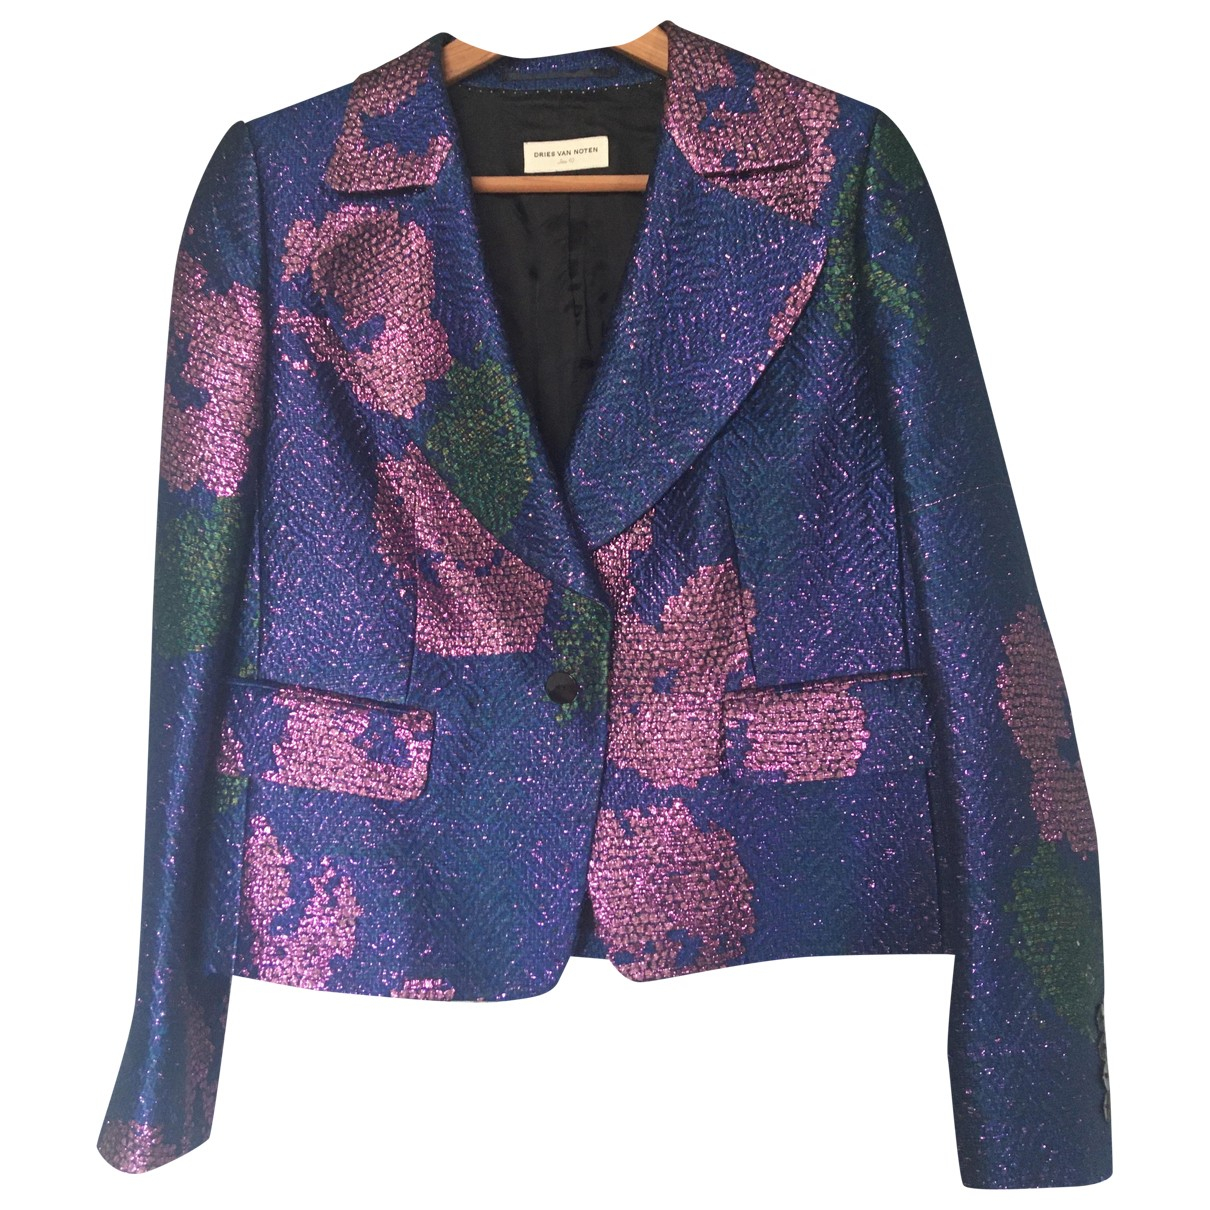 Dries Van Noten - Veste   pour femme en lin - multicolore